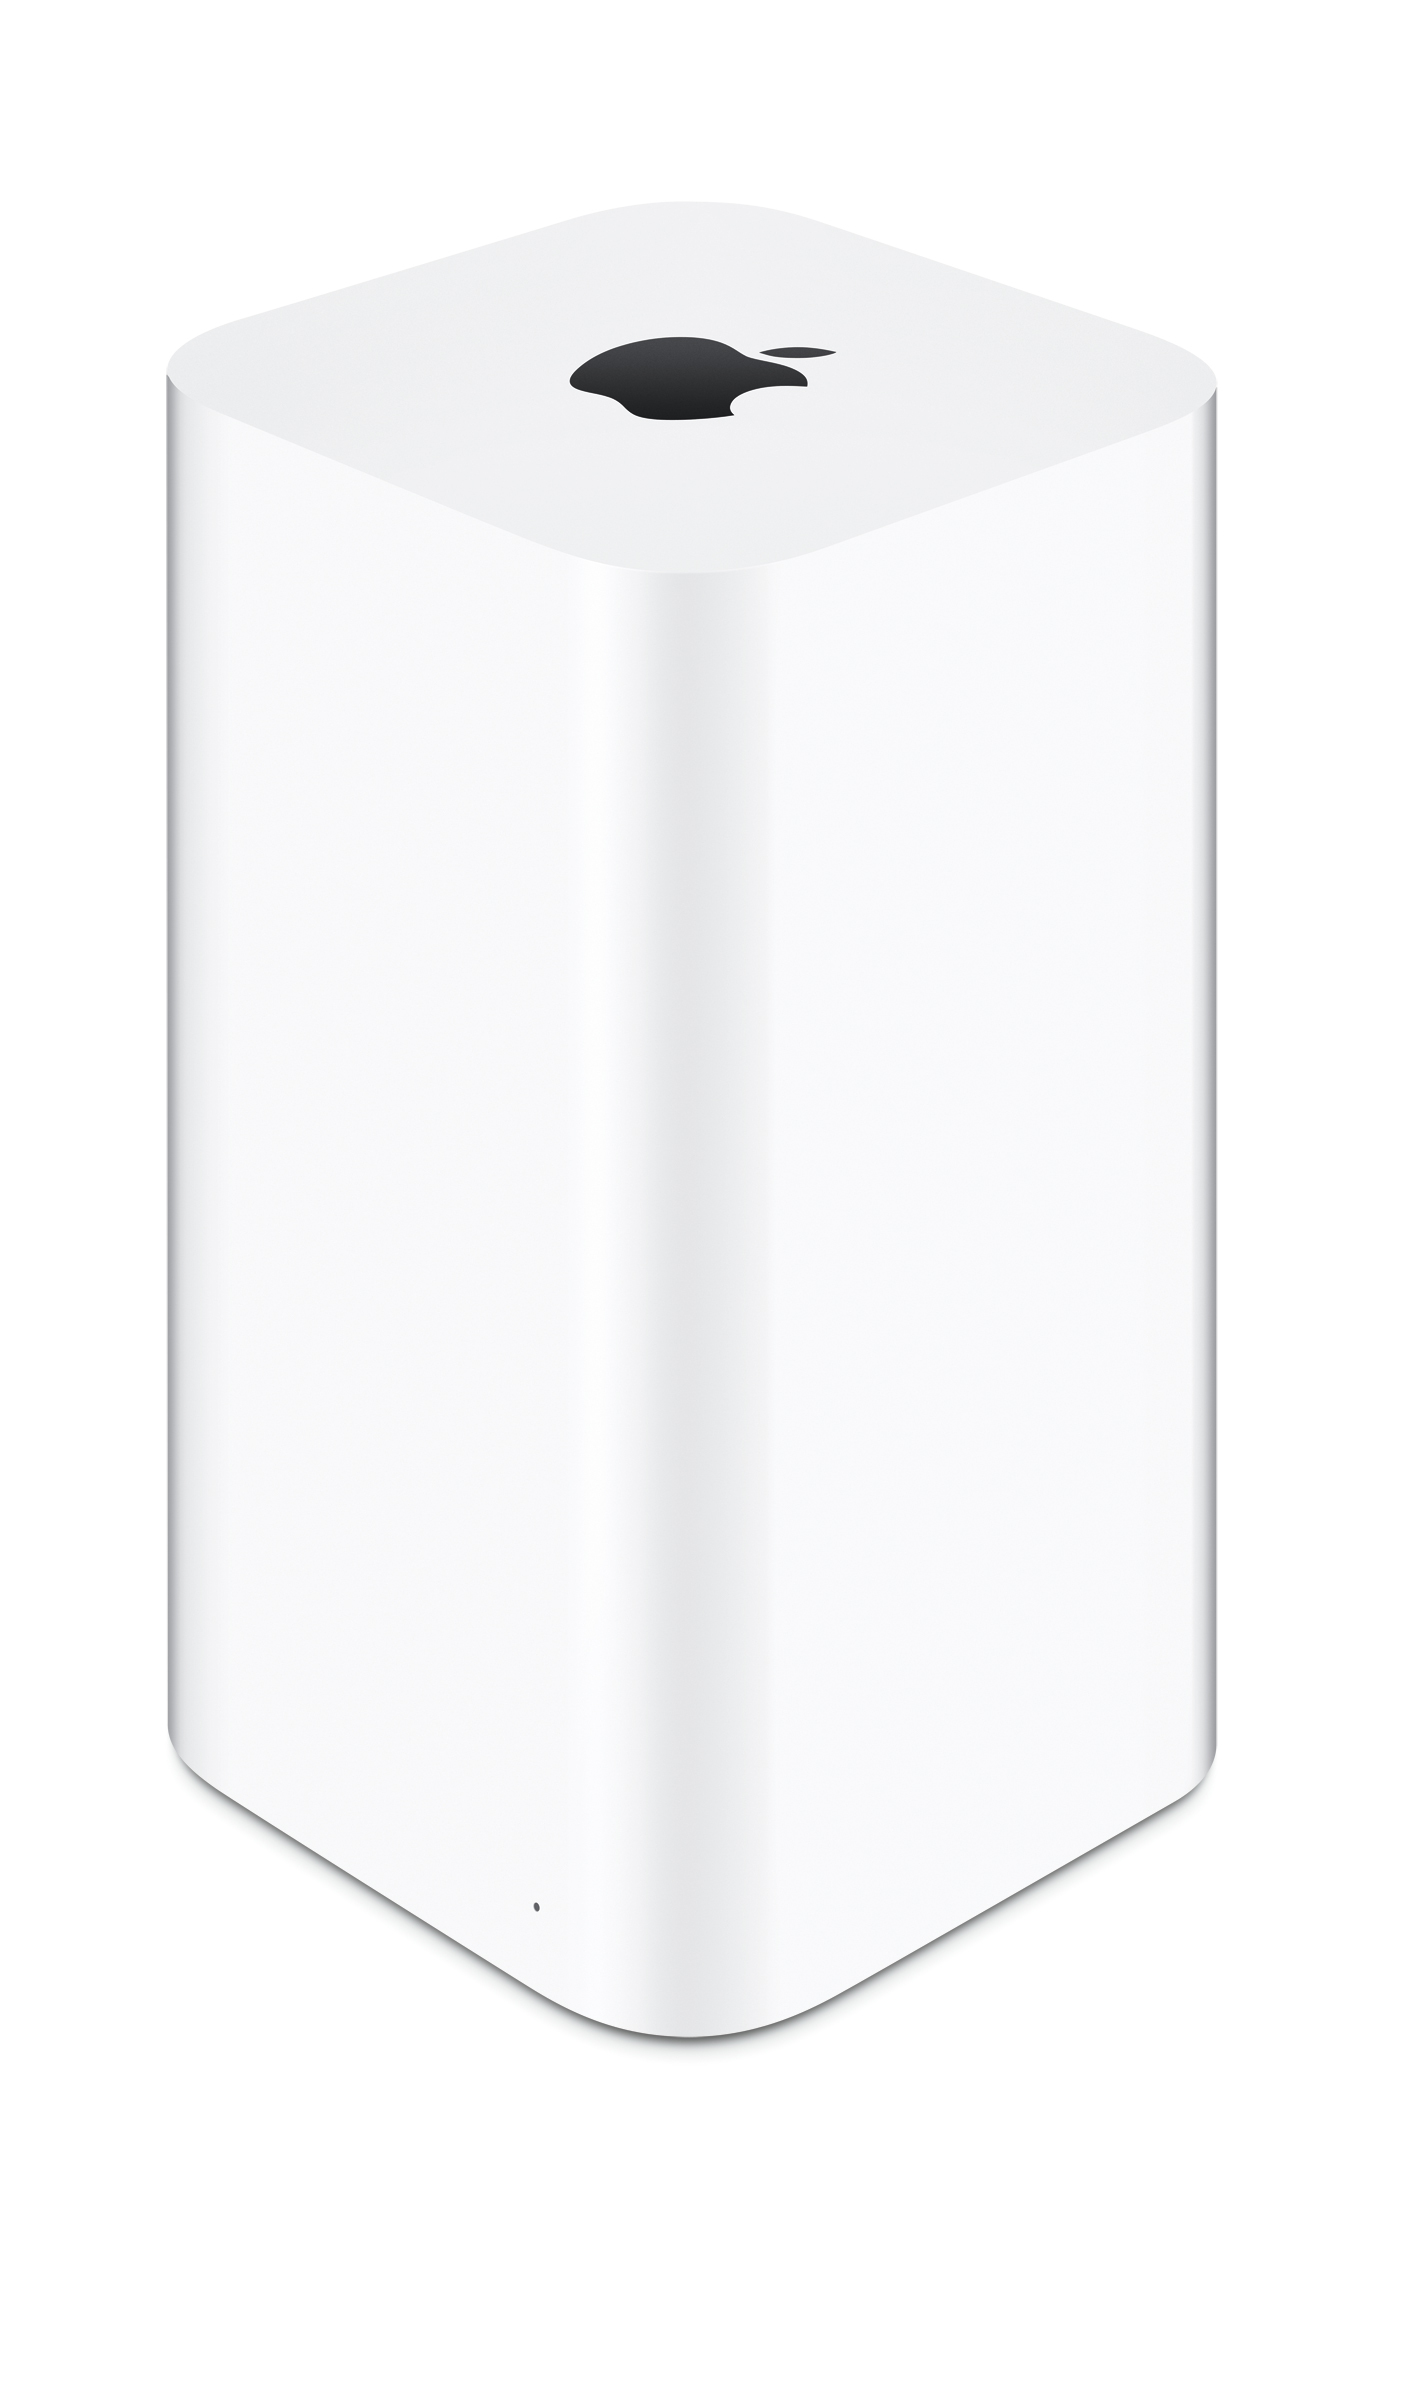 The redesigned AirPort Extreme and AirPort Time Capsule base stations feature 802.11ac Wi-Fi for up to three times faster performance. (Photo: Business Wire)